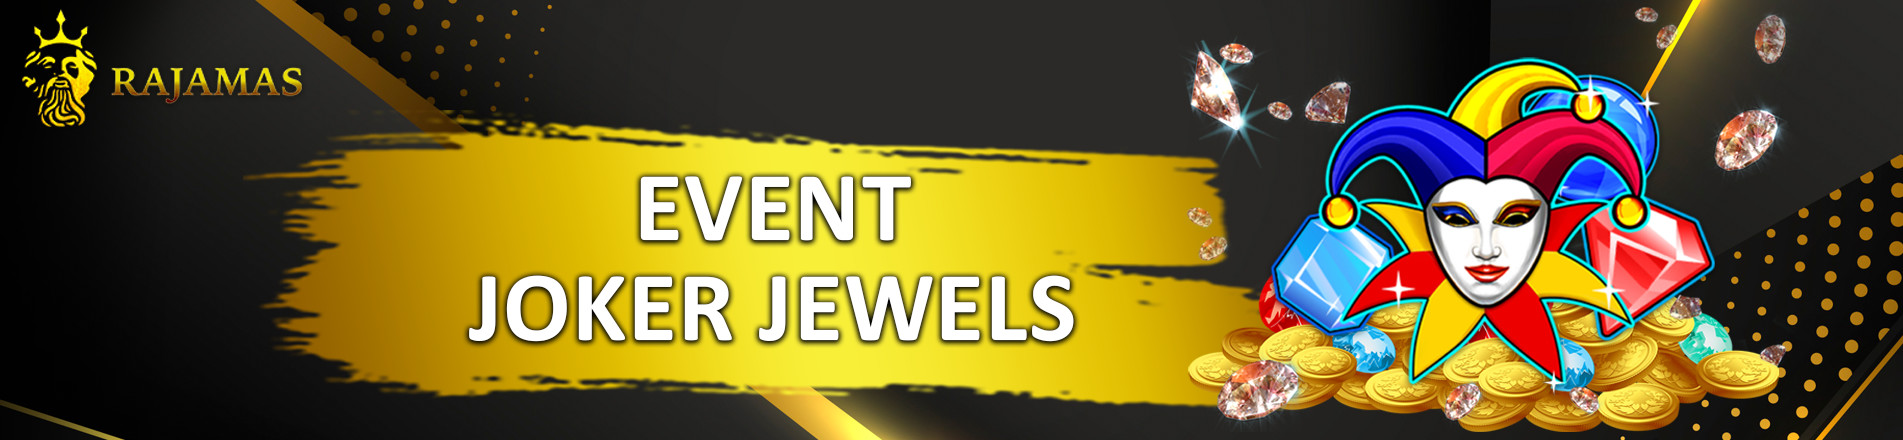 EVENT JOKER JEWELS RAJAMAS